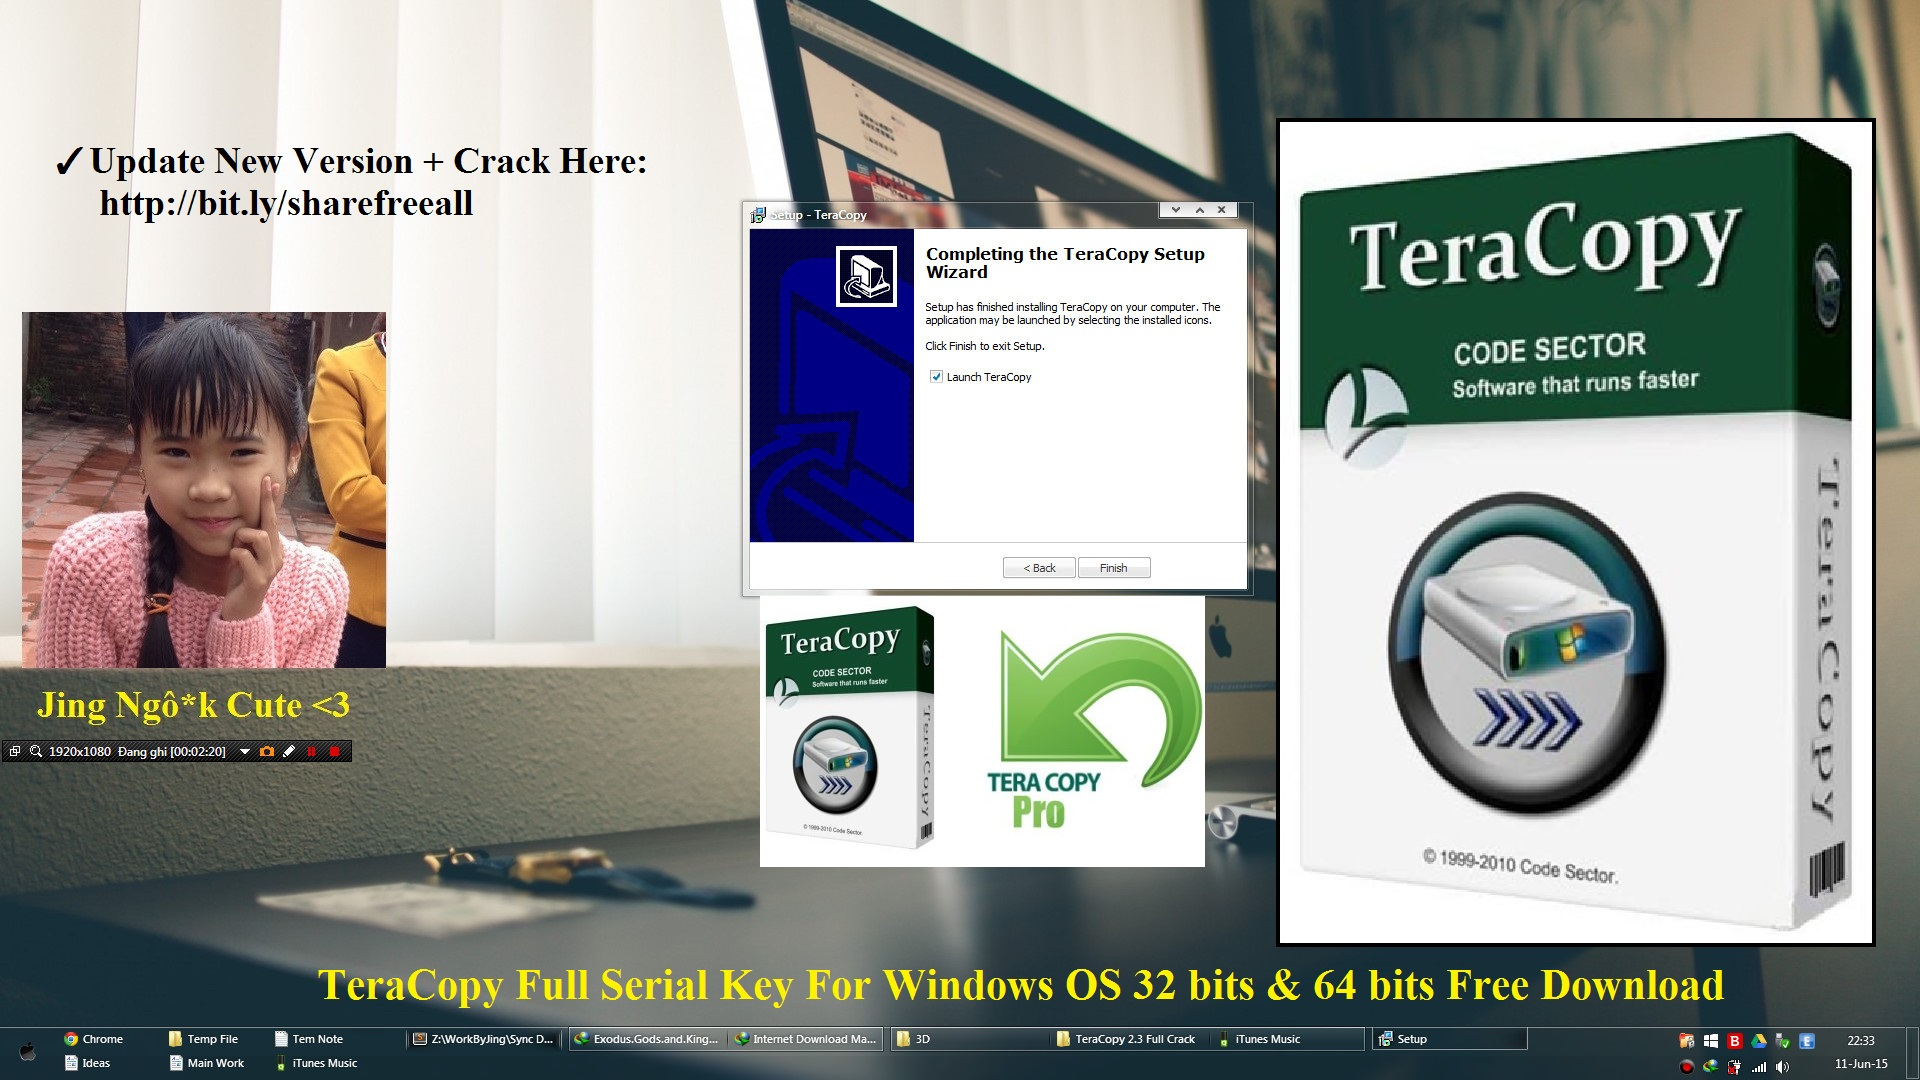 TeraCopy 2.3 2015 Crack Serial For Windows 32 bits and 64 bits